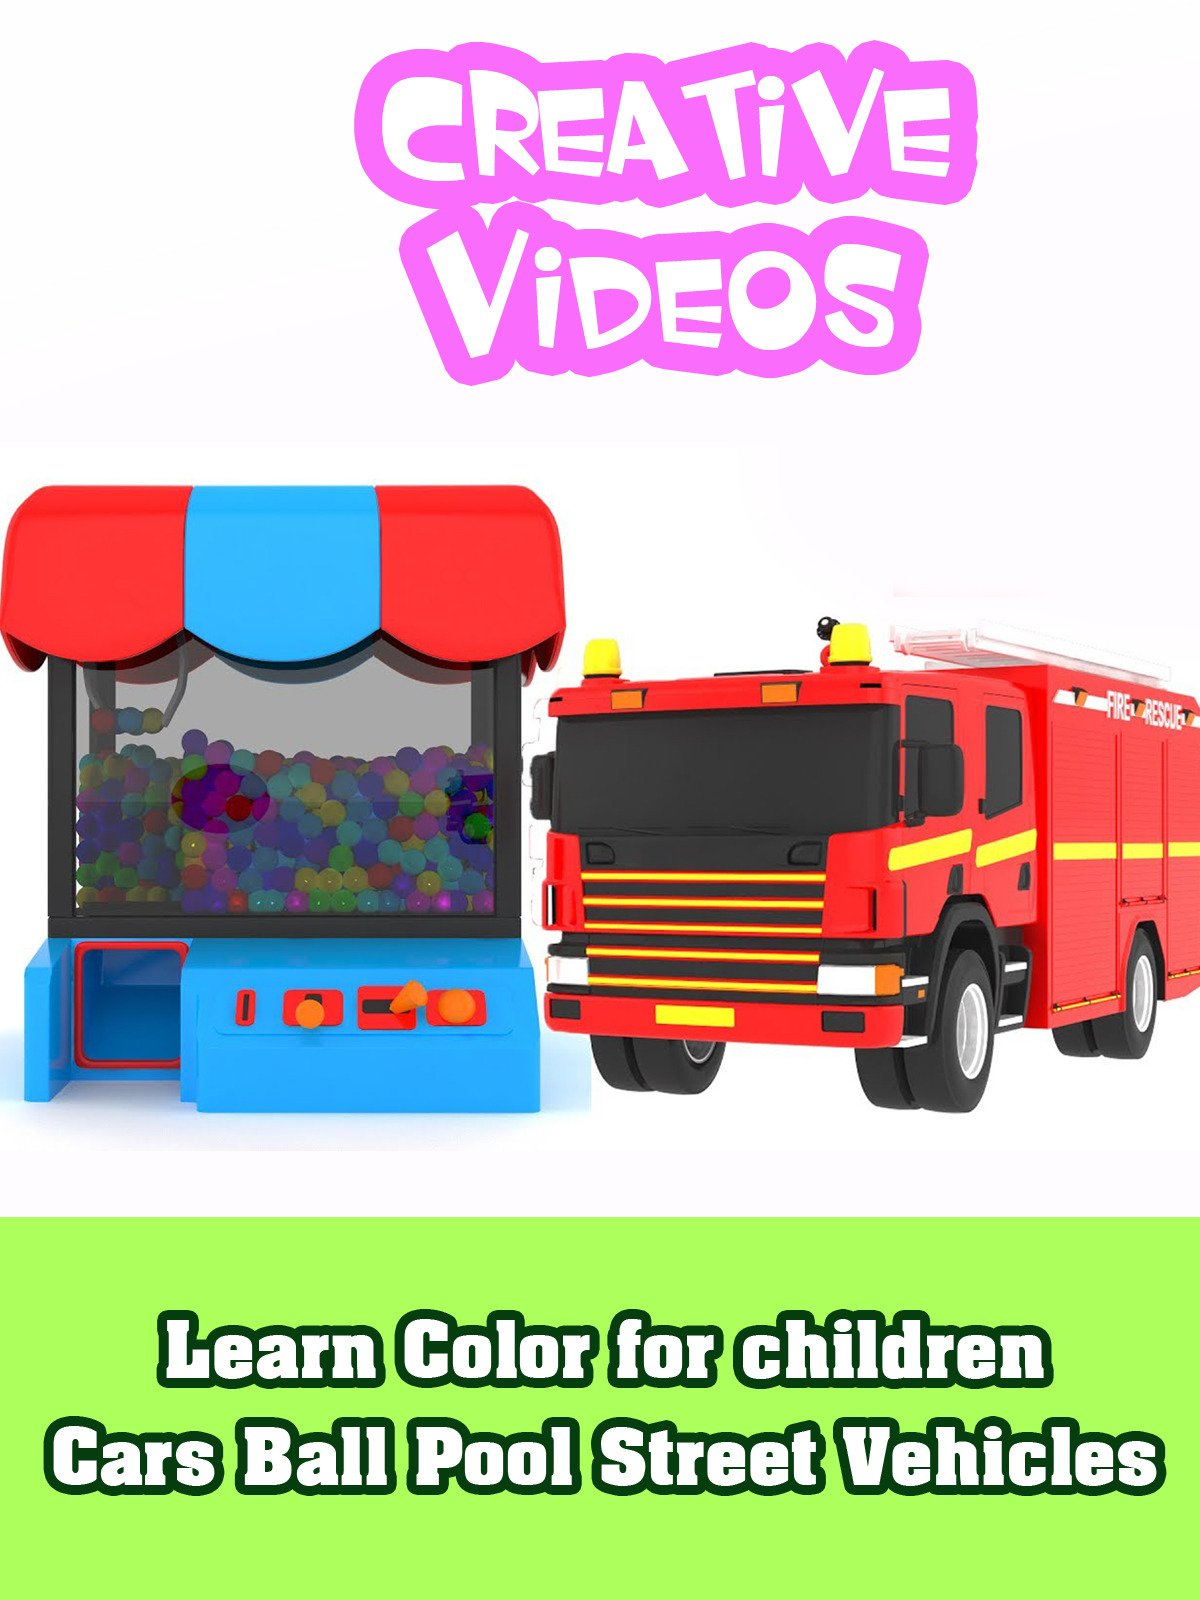 Learn Color for children Cars Ball Pool Street Vehicles